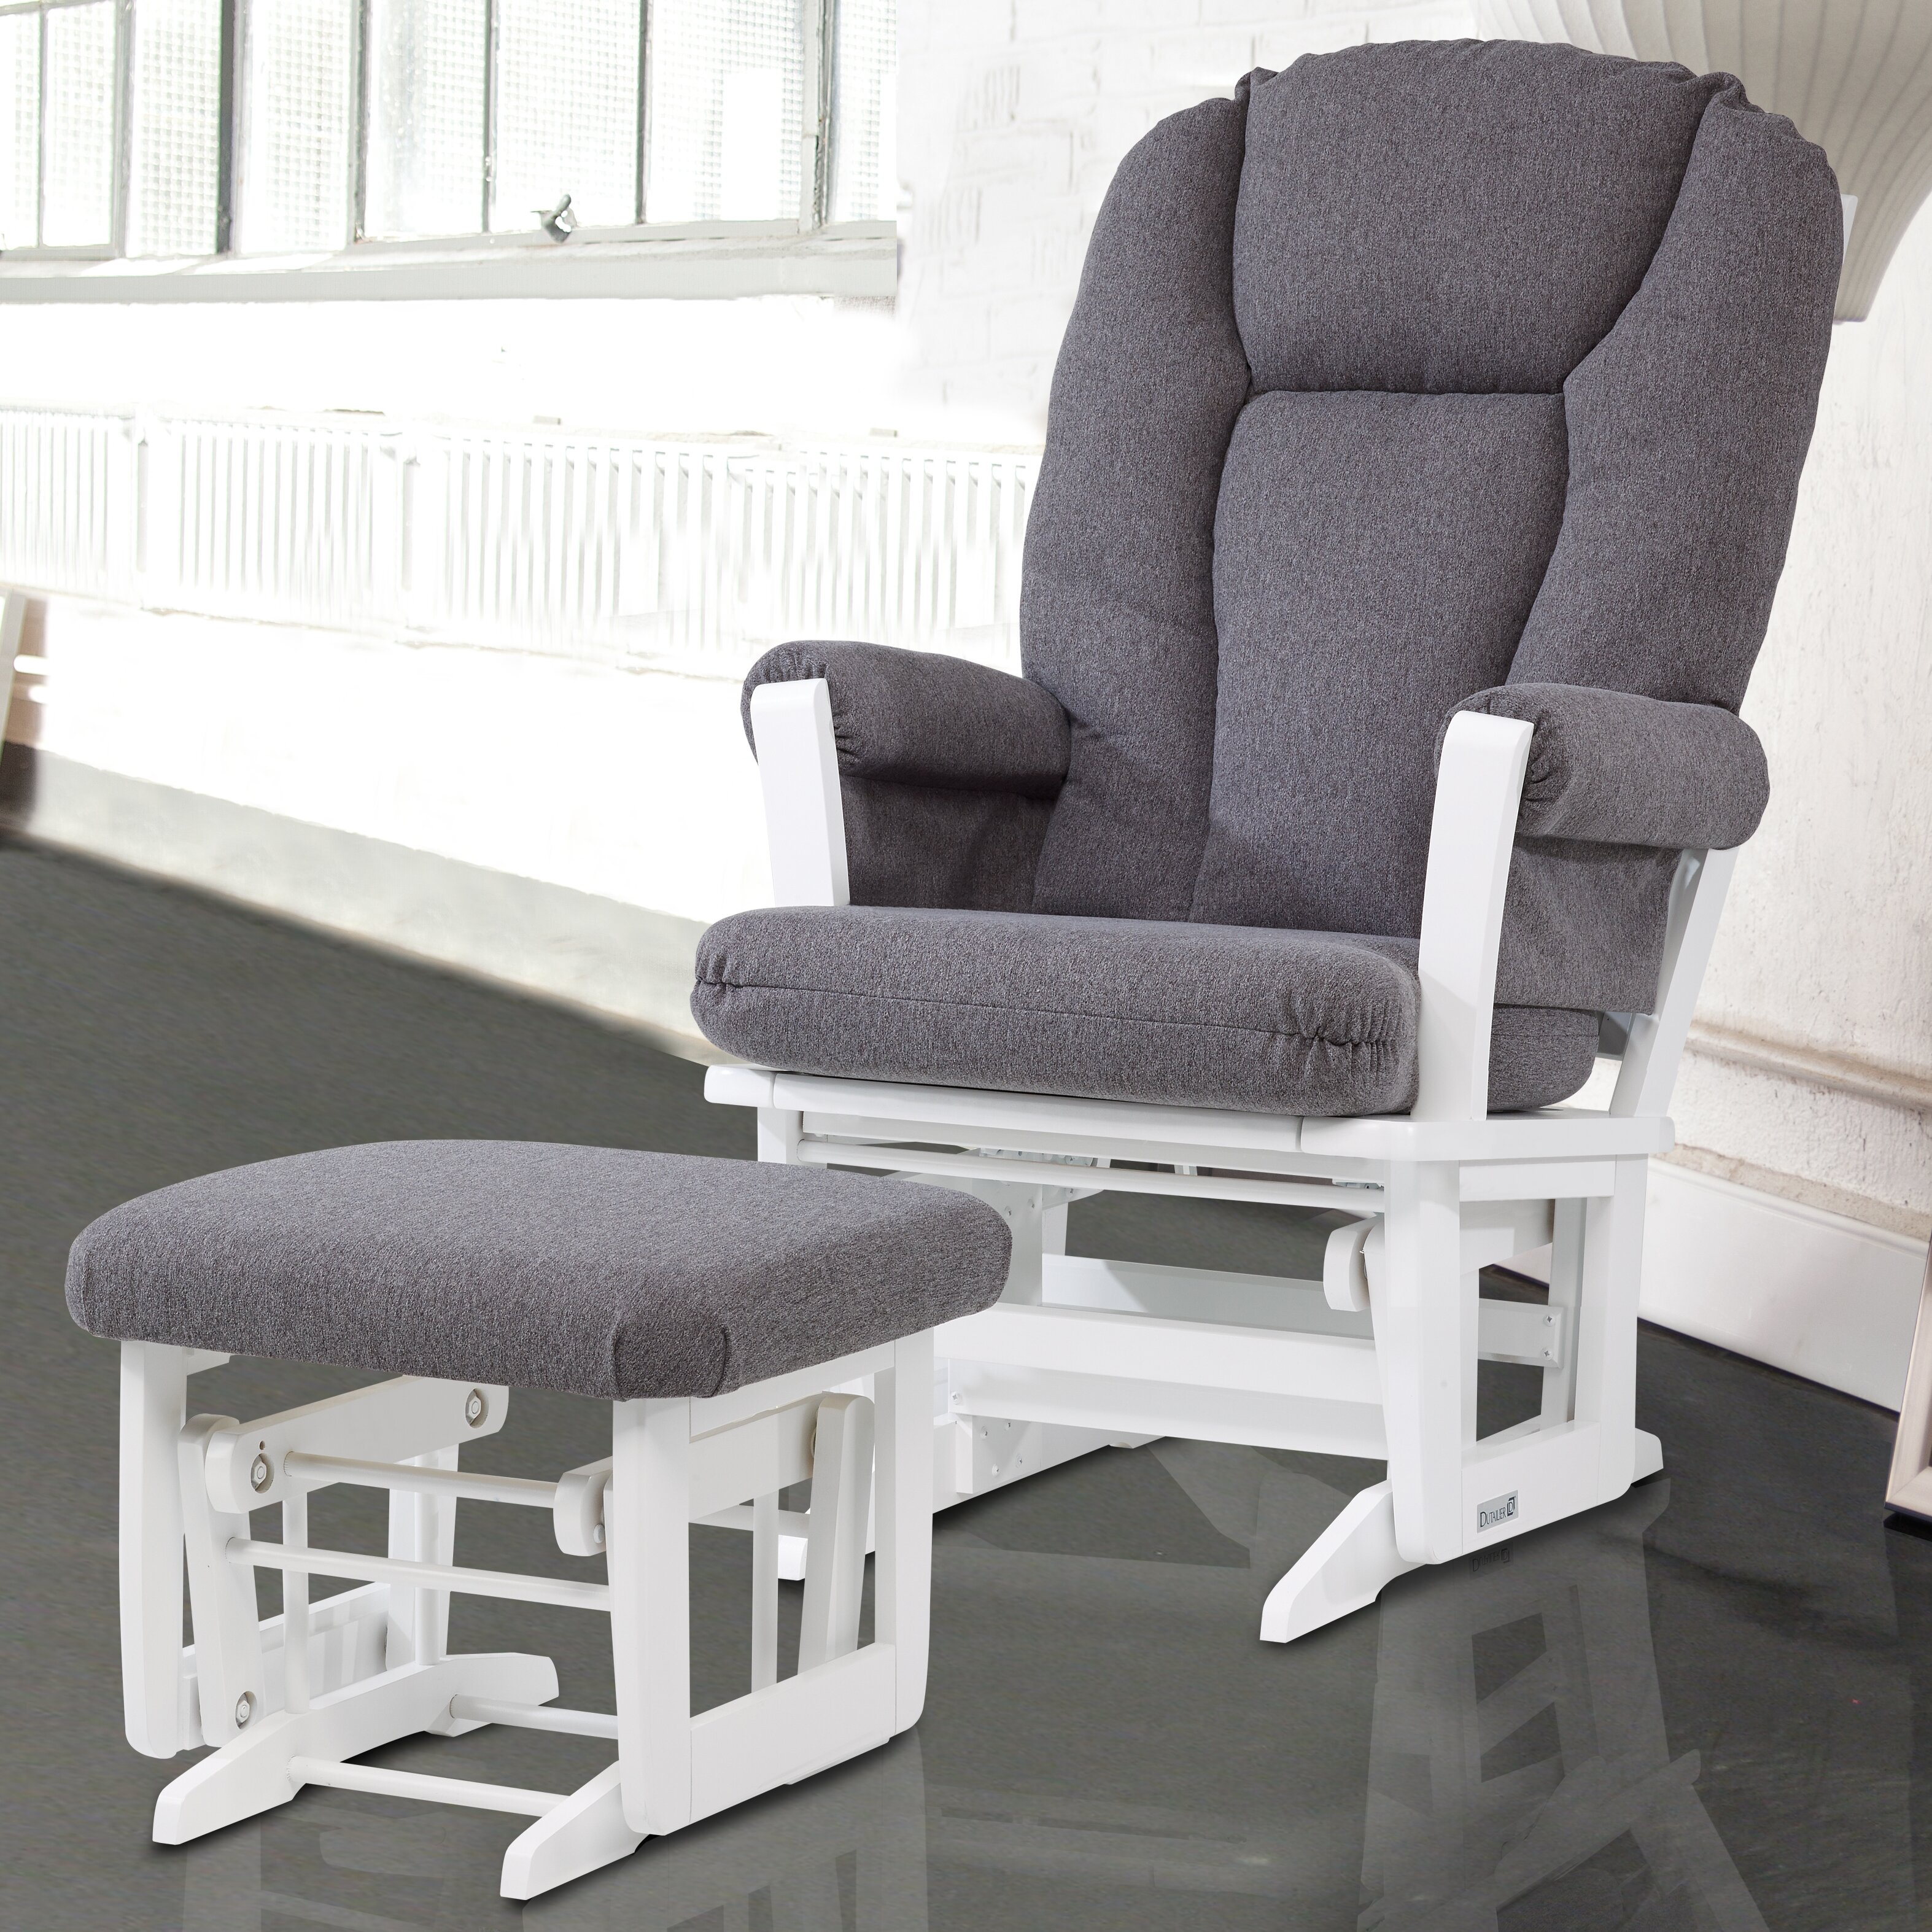 Superb img of Dutailier Ultramotion Modern Glider and Ottoman & Reviews Wayfair with #71665A color and 3147x3147 pixels